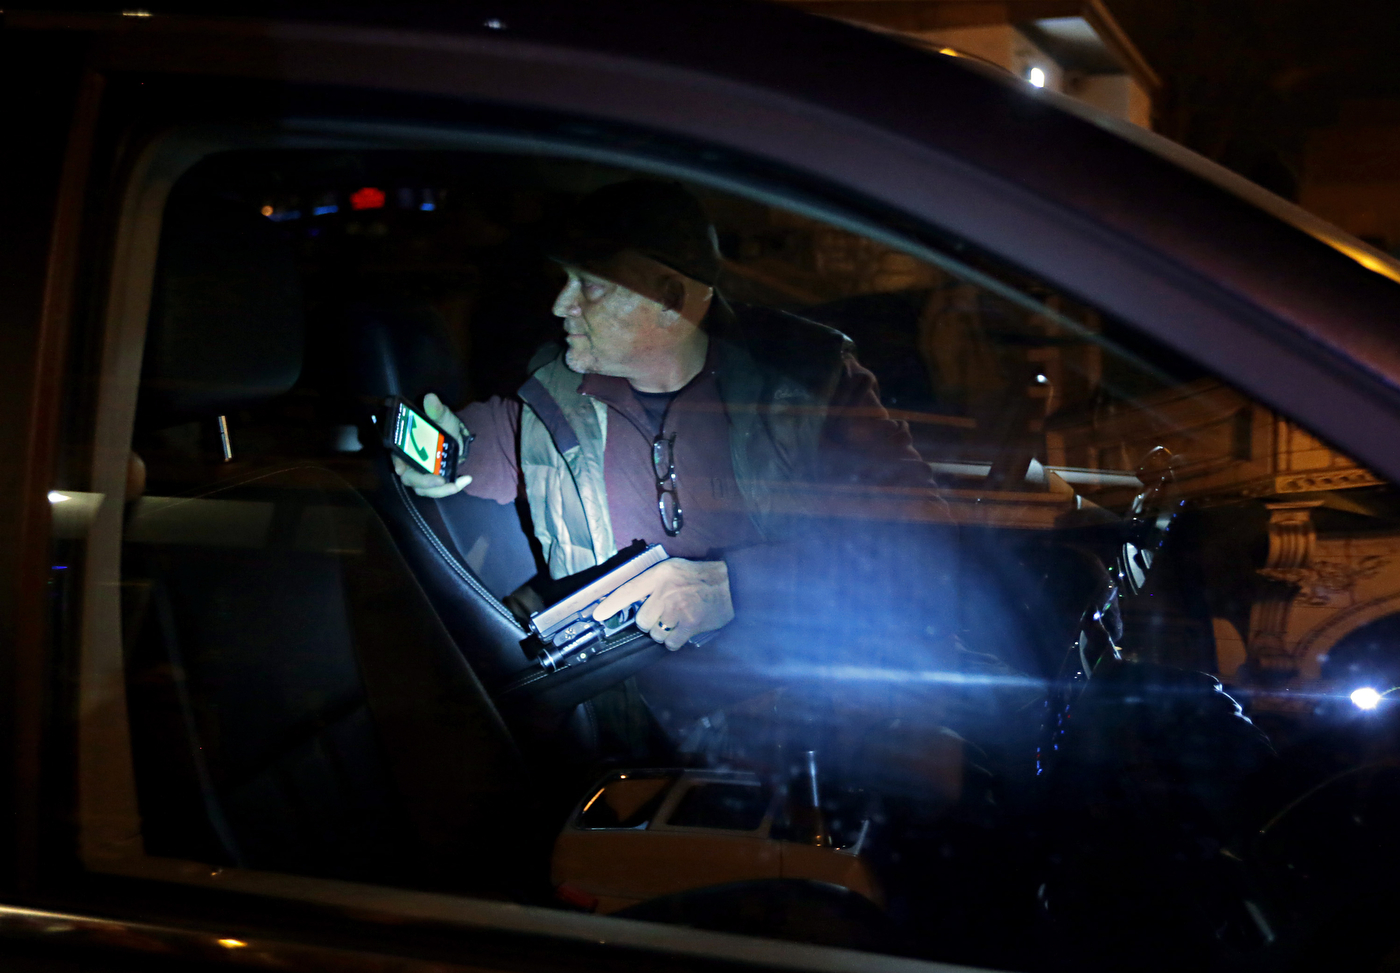 A motorist pulls his gun and keeps an eye on protesters who broke out the rear window of his minivan along Euclid Avenue in St. Louis on Wednesday, Dec. 3, 2014. Moments before the motorist had dangerously driven through a group Ferguson protesters standing in the intersection of Euclid and Maryland Avenue. The protesters chased him down the street and surrounded his vehicle when he became stuck in traffic.